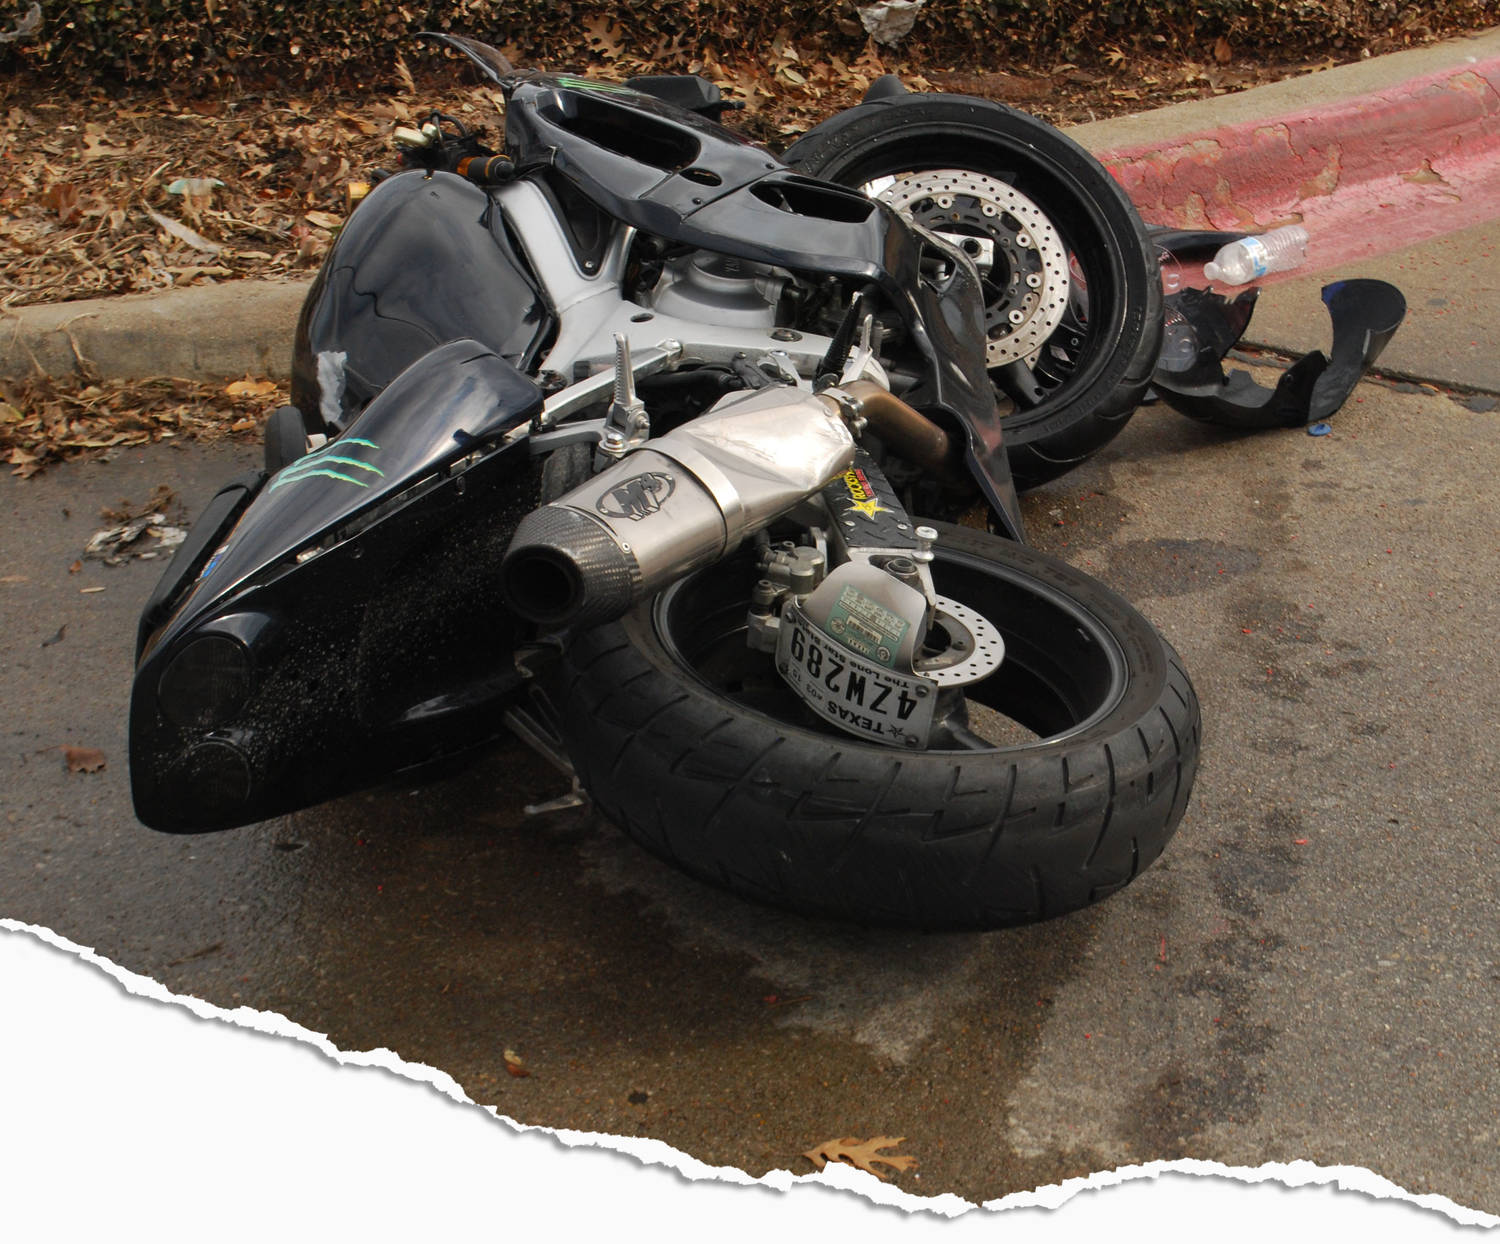 A smashed motorcycle in the road.